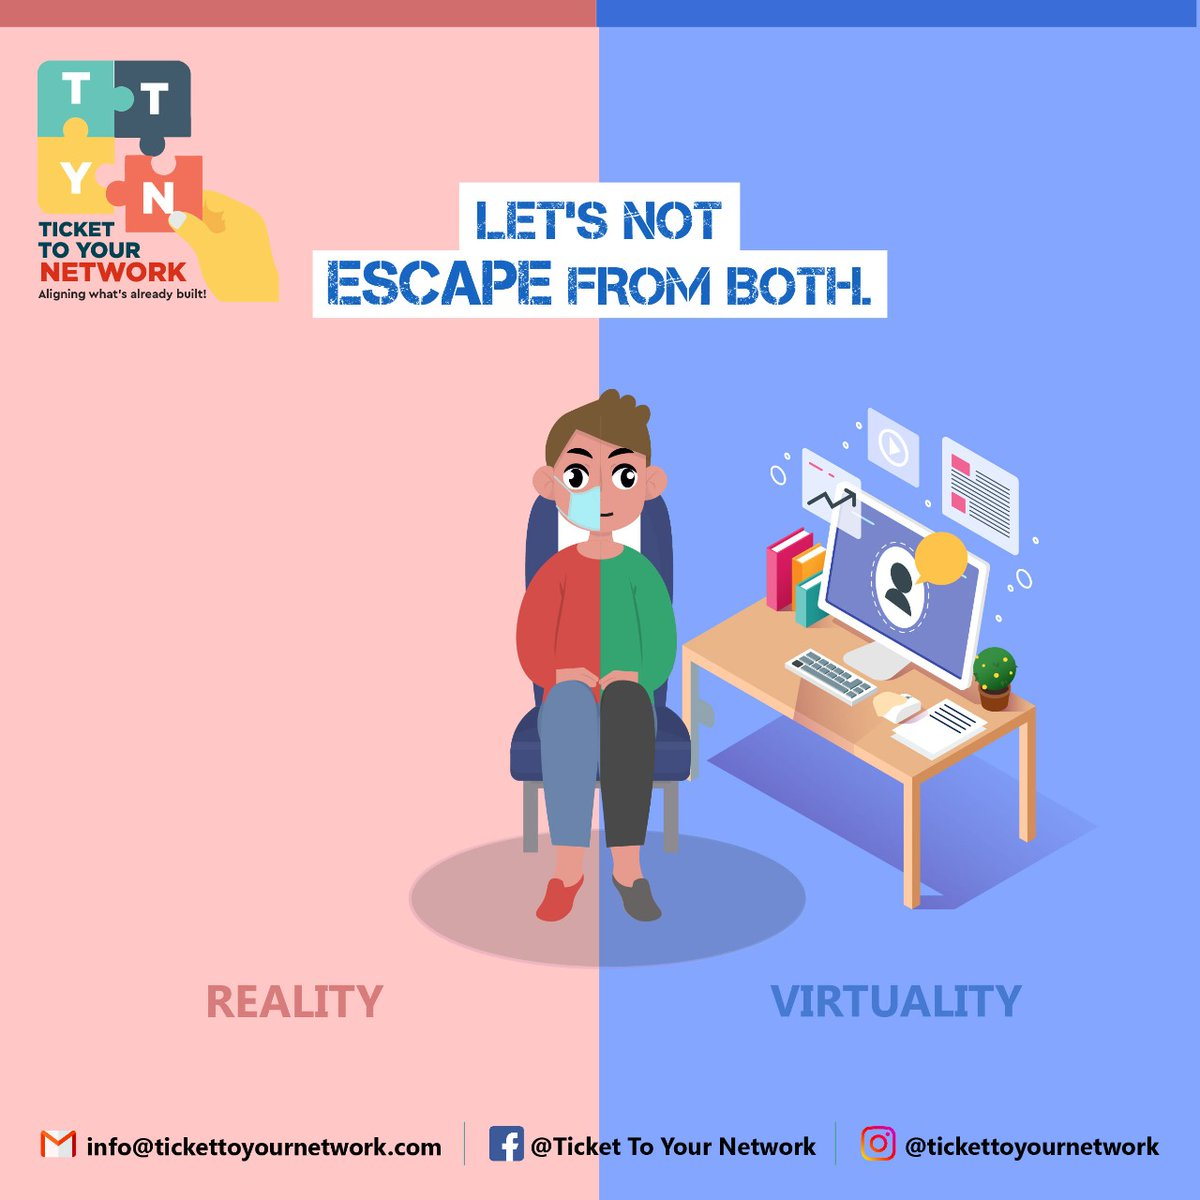 Alignment of both is need of the hour.  #webinar #virtual #MentalHealthAwarenessMonth #realestate #sales  #Finance #education  #buisness #followback #tickettoyournetwork #love #india #likealways #likeall #photooftheday #instagood #TwitterTips #humancapital #digital #marketing